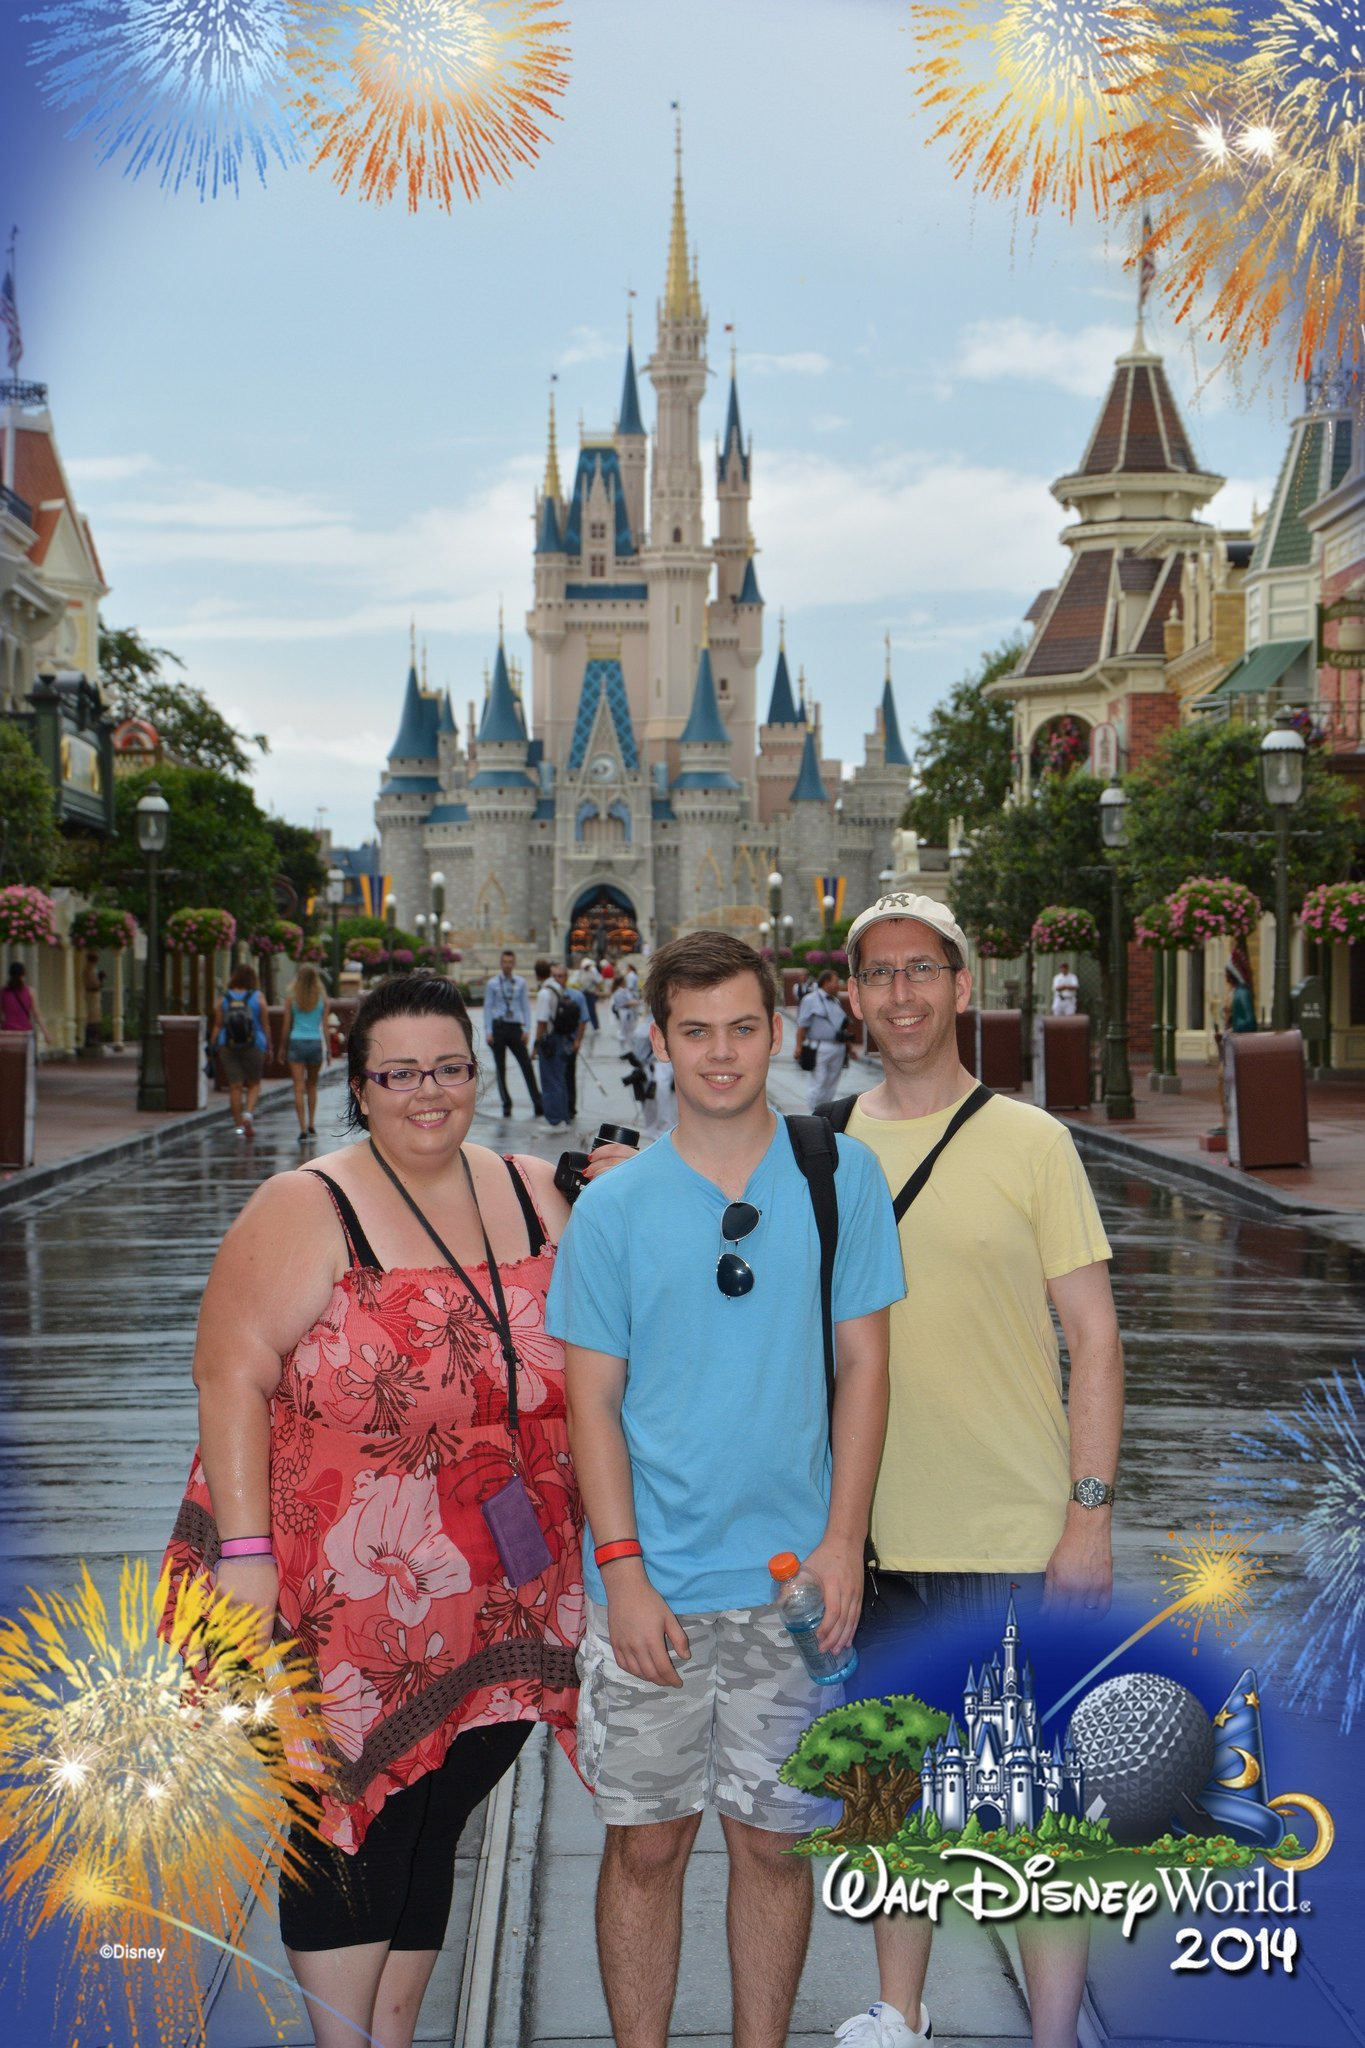 Us at Magic Kingdom 2014